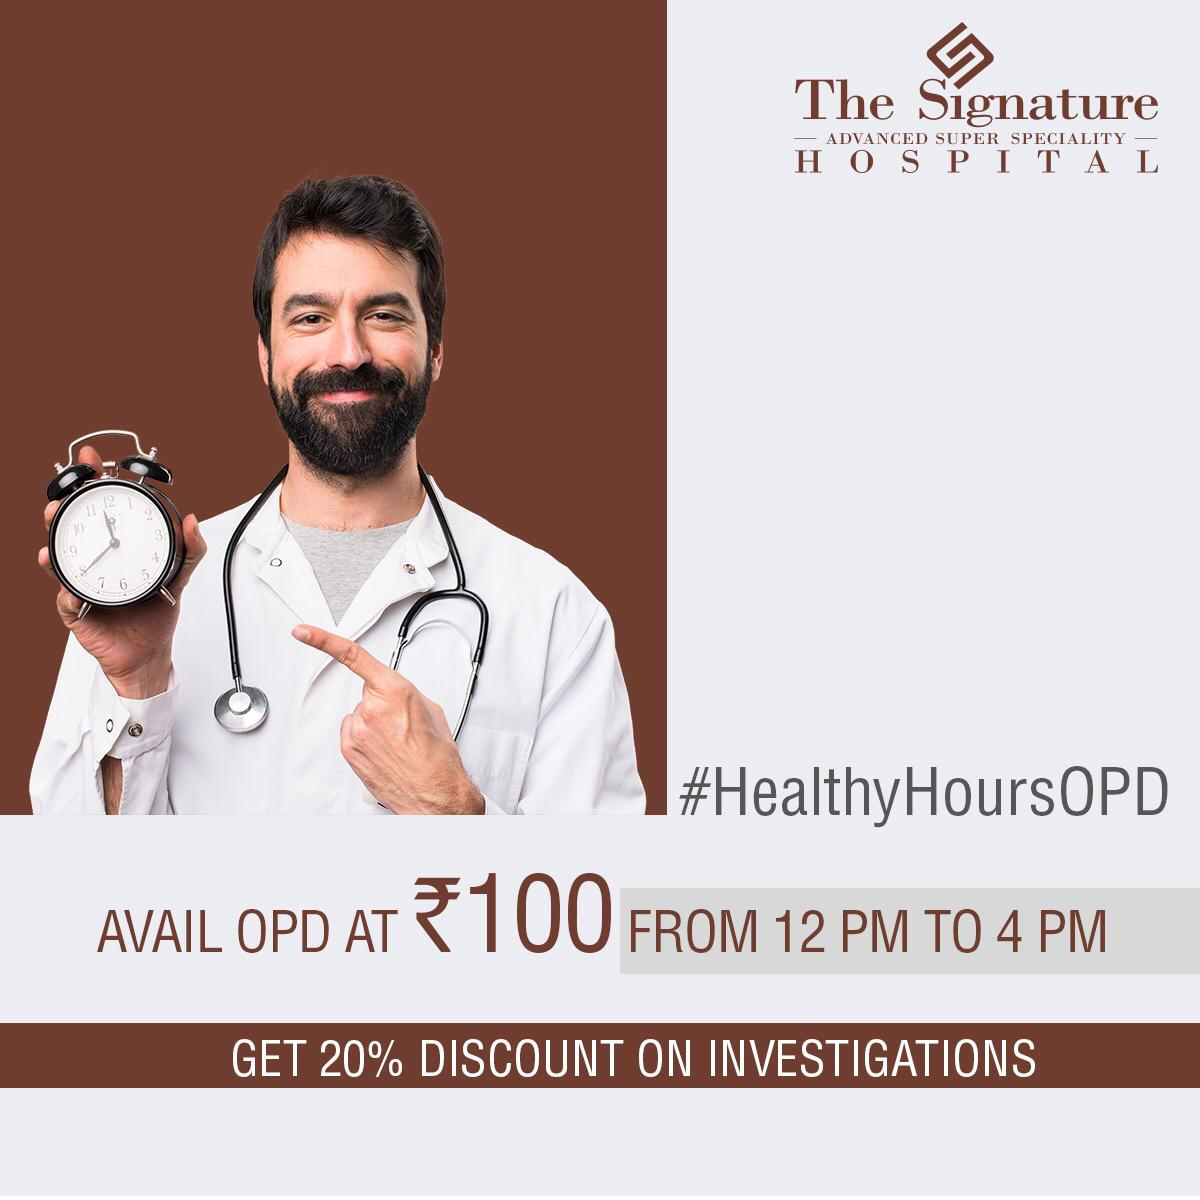 Healthy Hours at Signature hospital!